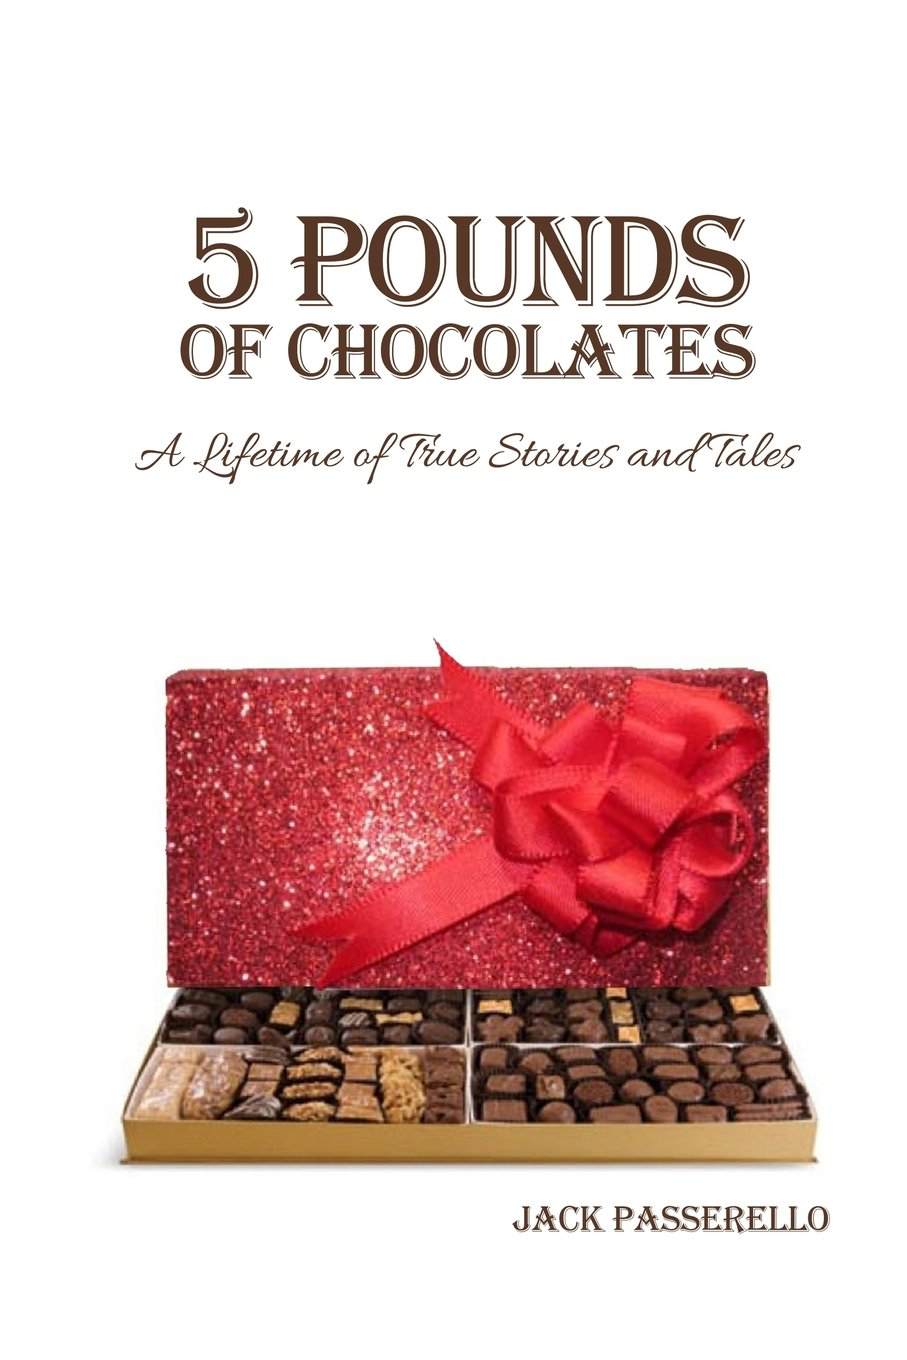 5 Pounds of Chocolates: A Lifetime of True Stories and Tales ebook